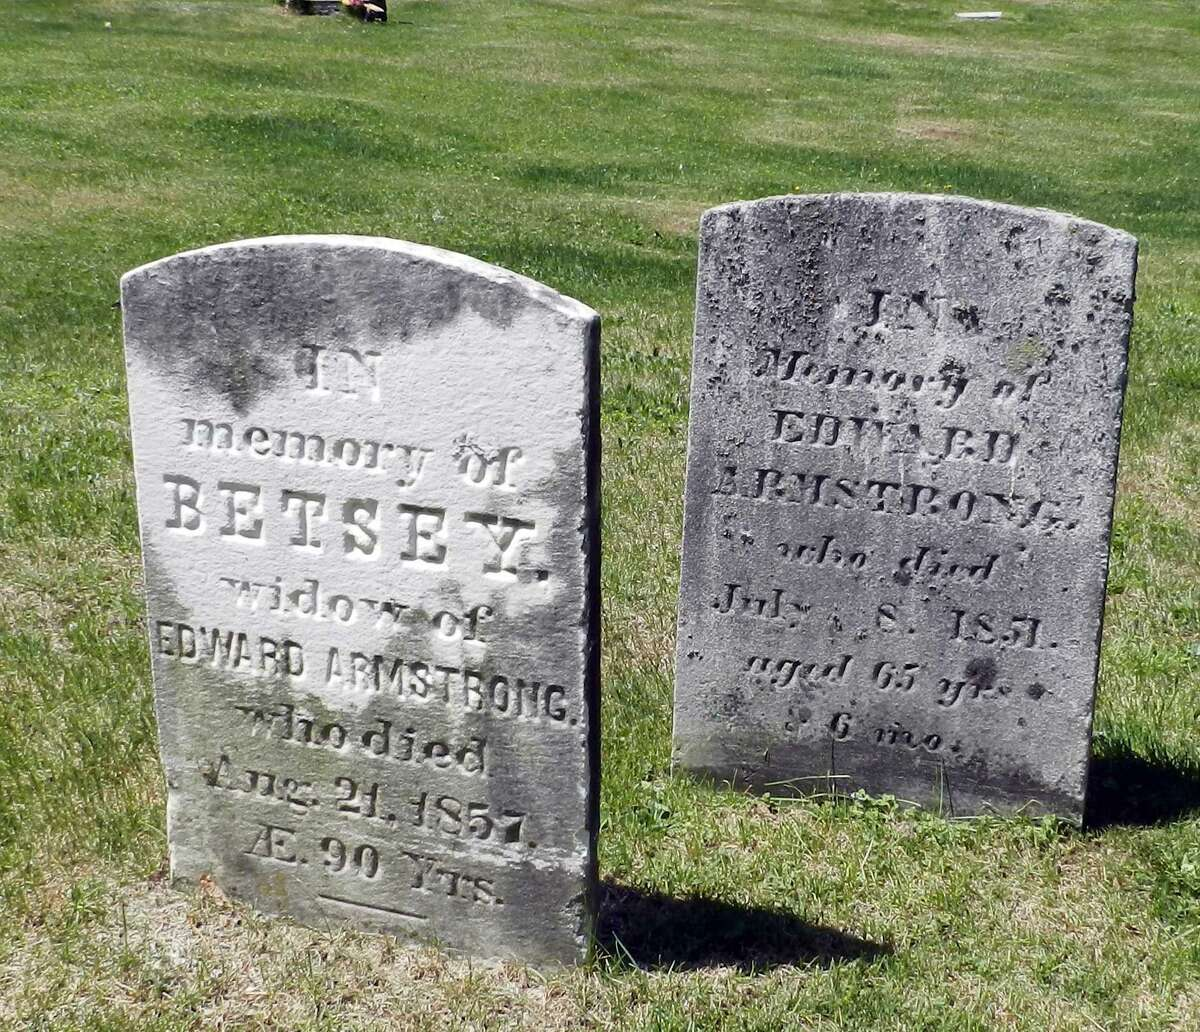 Ridgebury Cemetery is home to the side by side graves of Uncle Ned and Aunt Betsey Armstrong, whose work on the Underground Railroad helped escaped slaves find freedom before the Civil War.